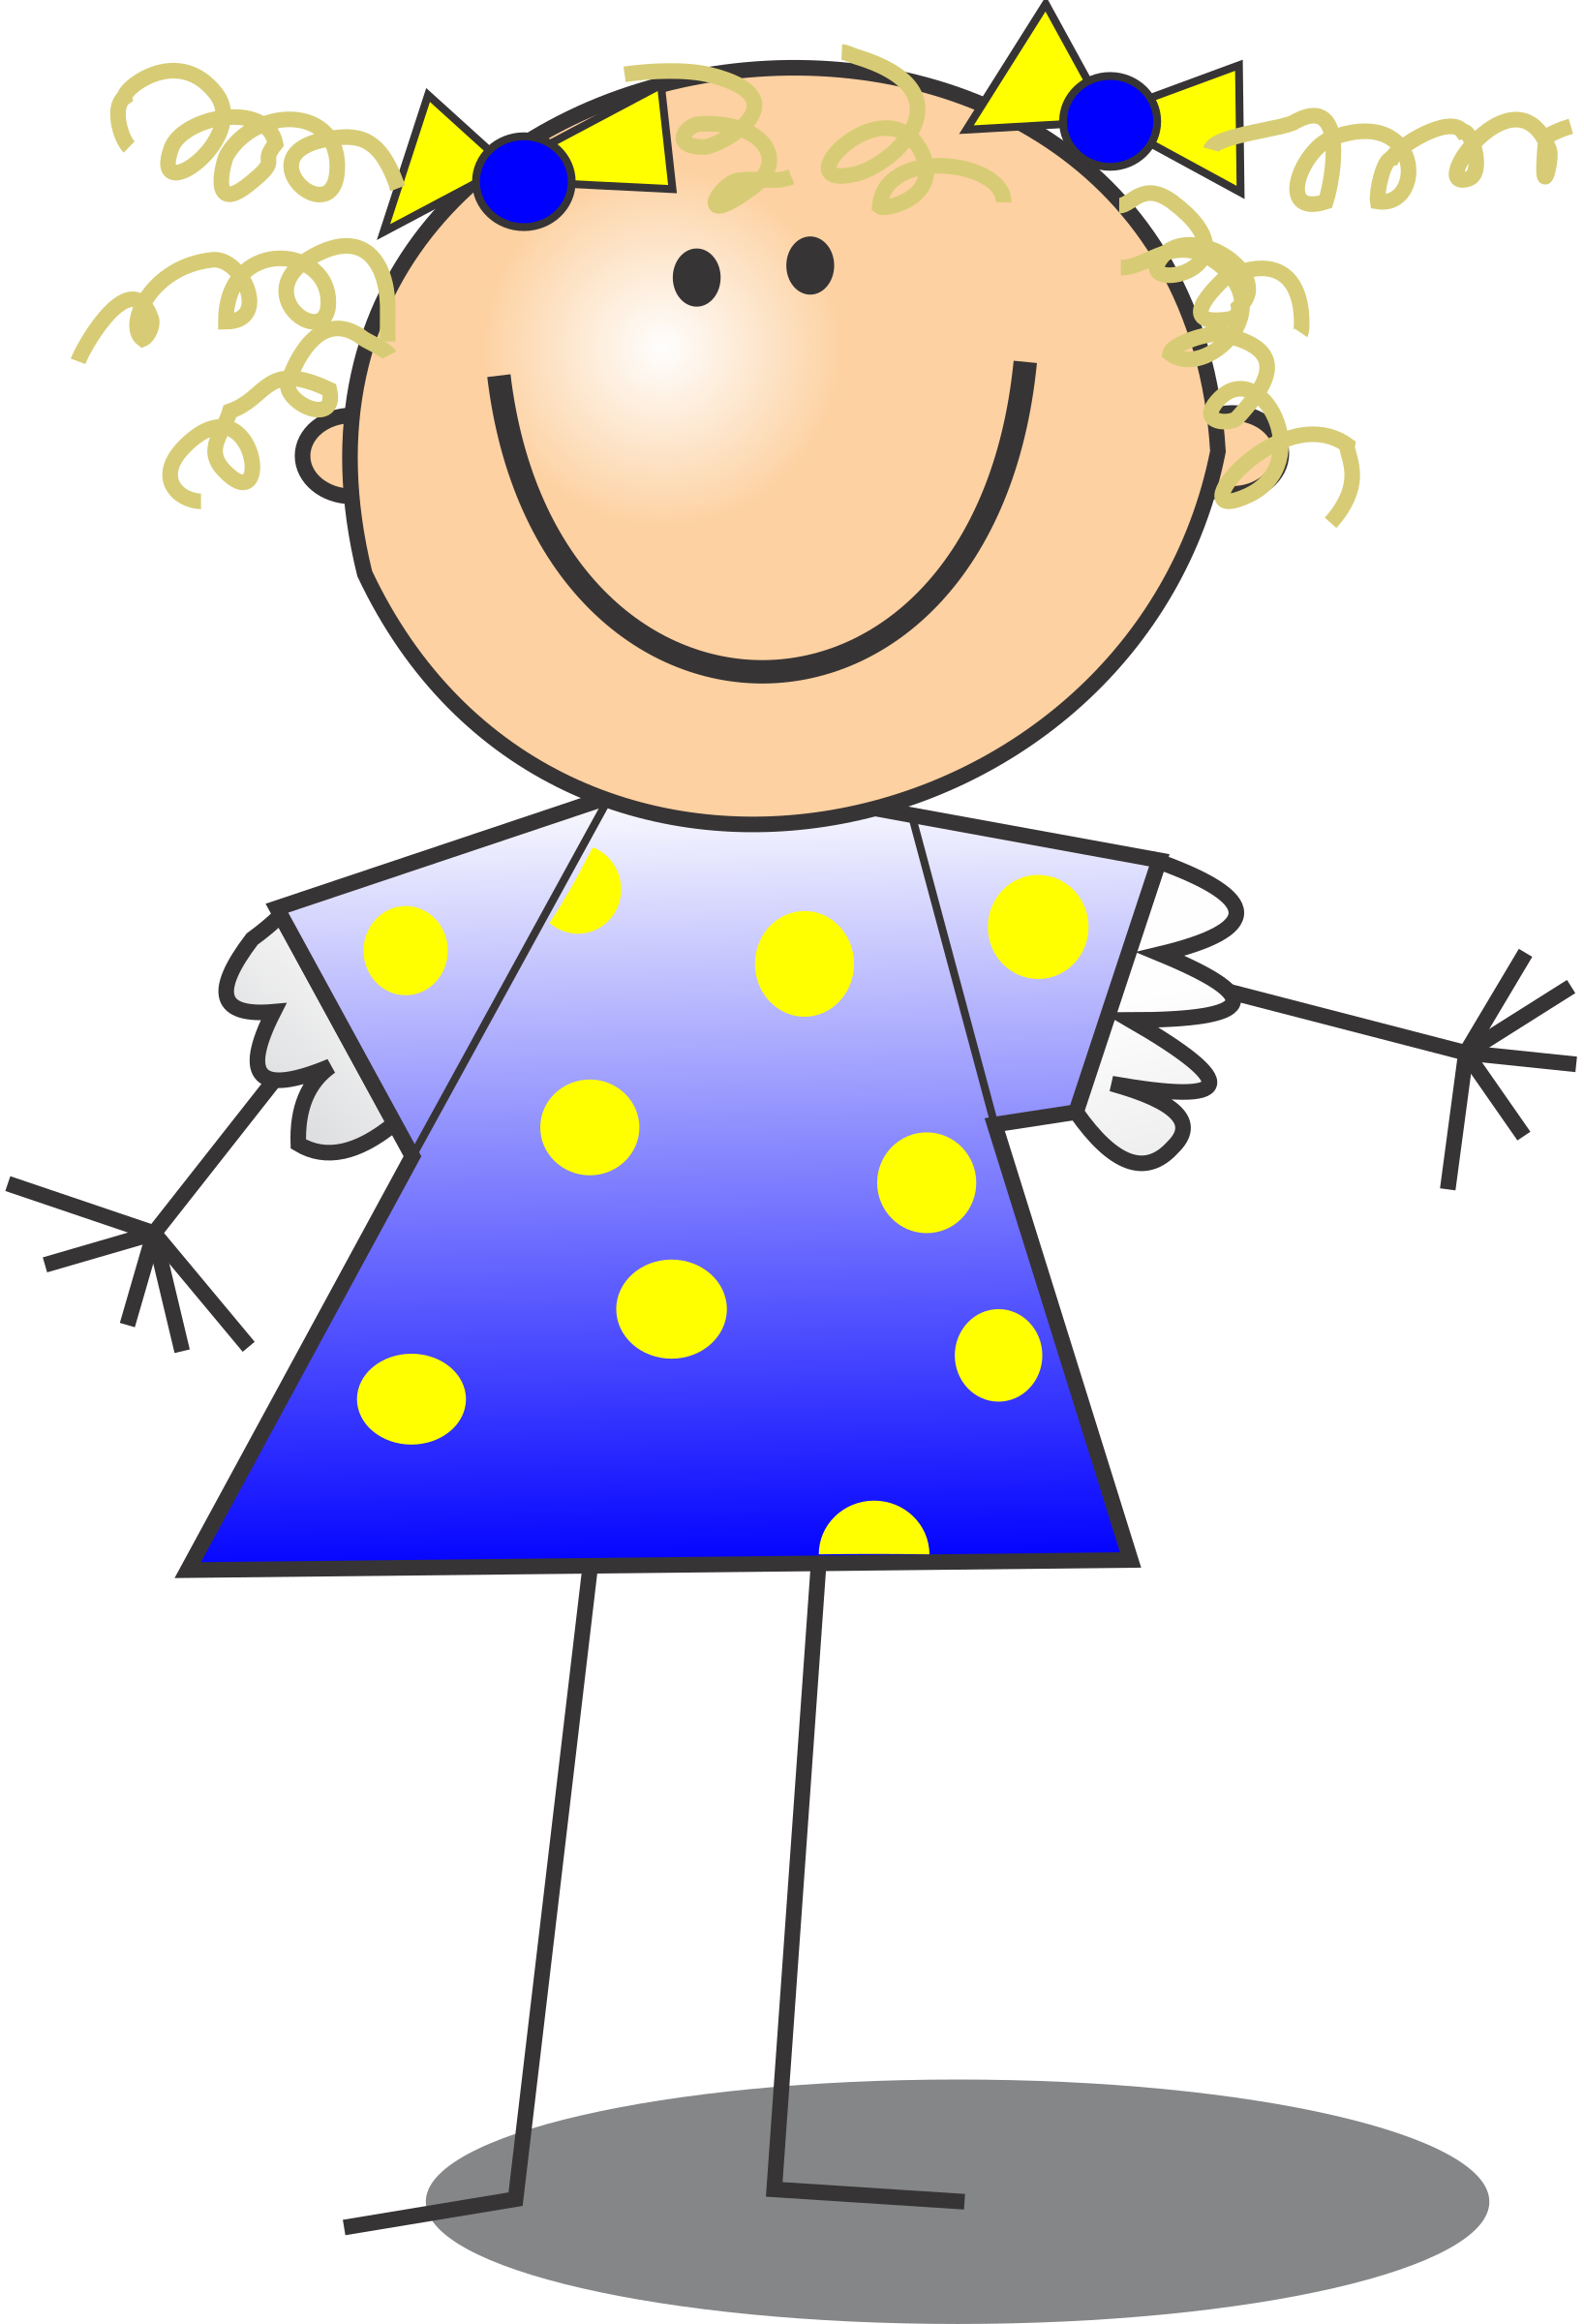 Girl smiling stick figure. Girls clipart curly hair